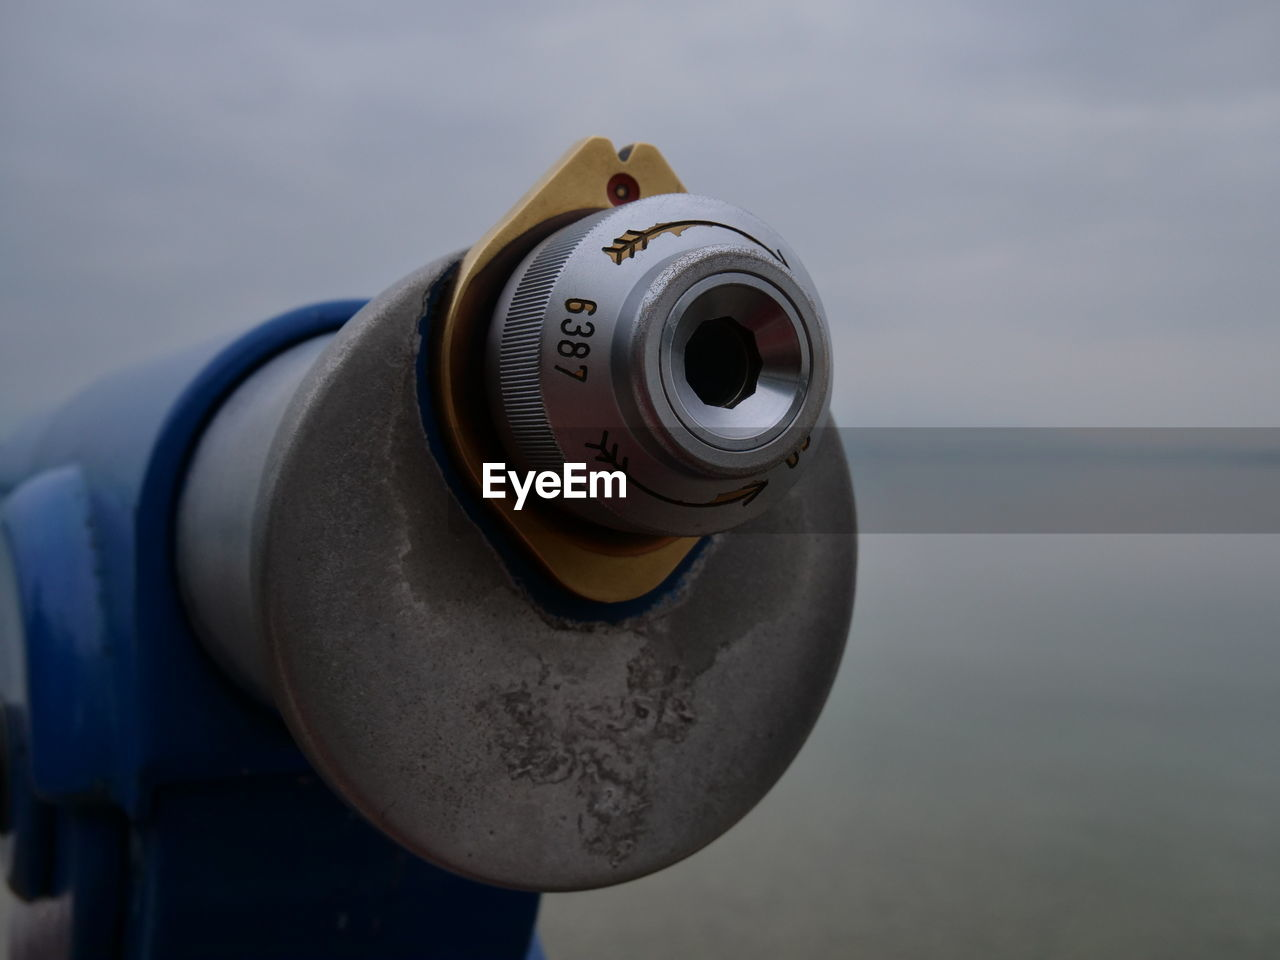 water, sea, focus on foreground, sky, binoculars, coin operated, nature, close-up, technology, no people, day, coin-operated binoculars, metal, security, outdoors, photography themes, protection, surveillance, single object, hand-held telescope